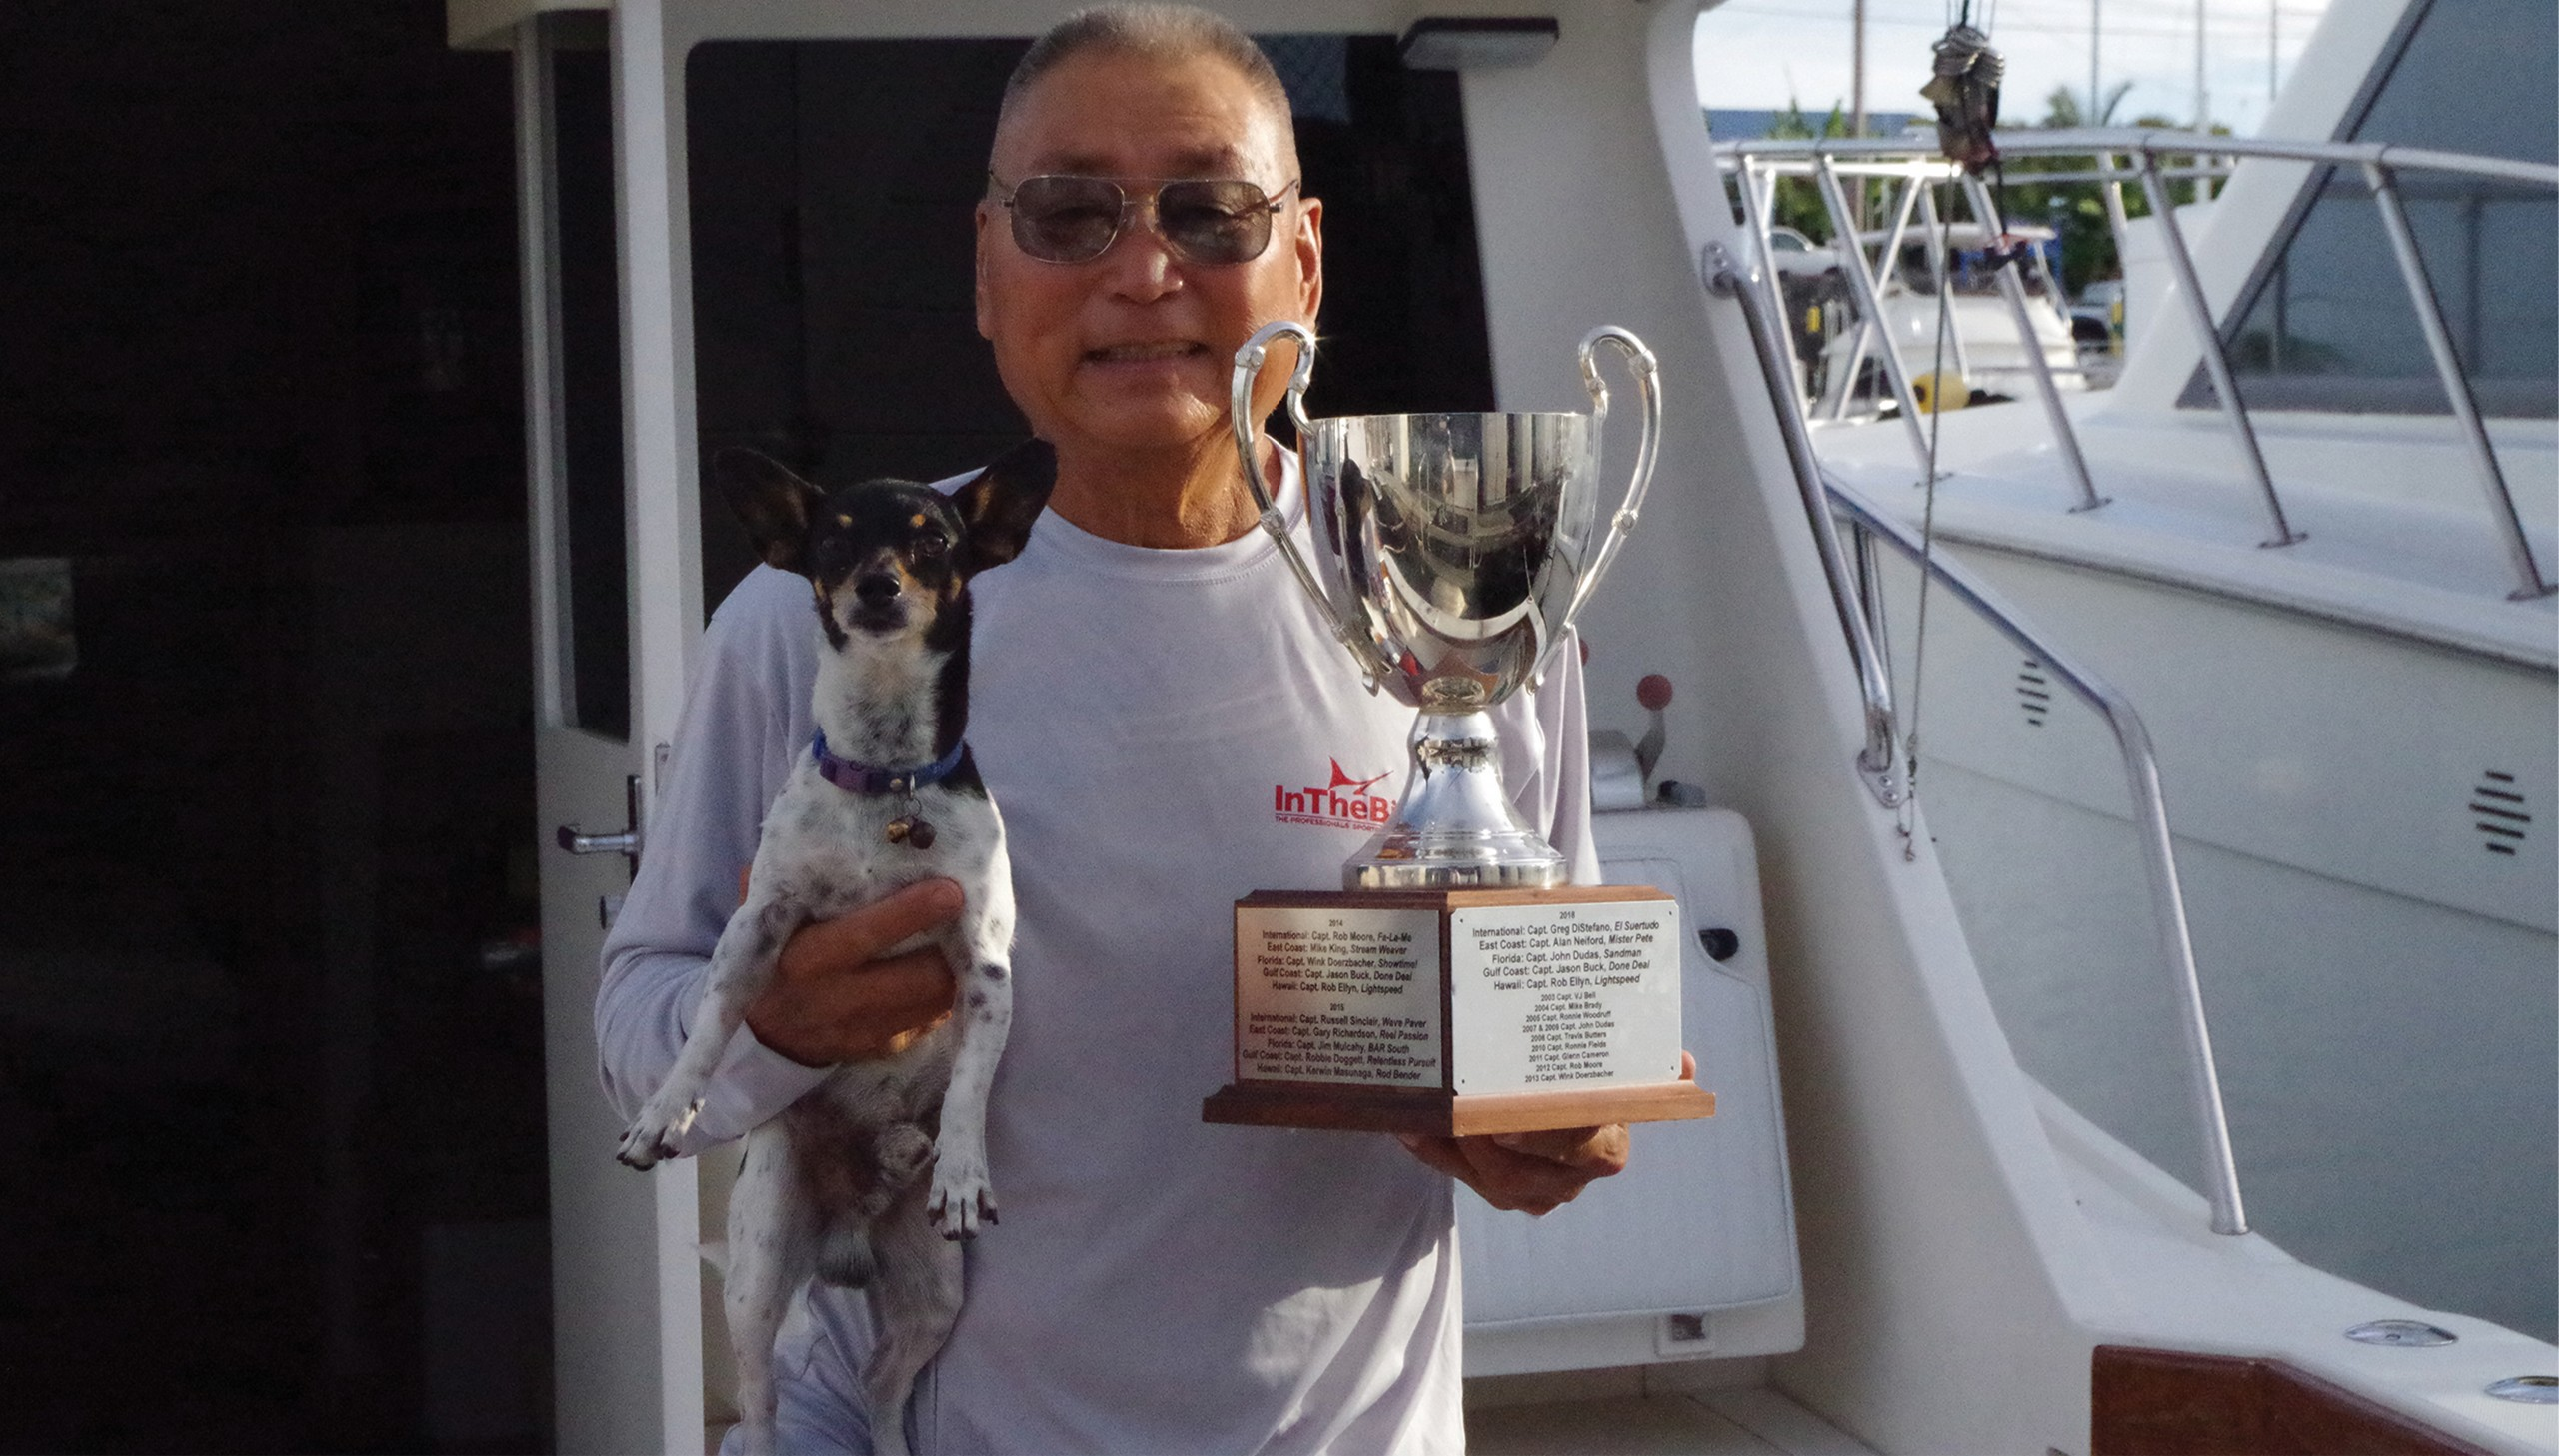 Picture of Kerwin Masunaga holding his dog and a trophy